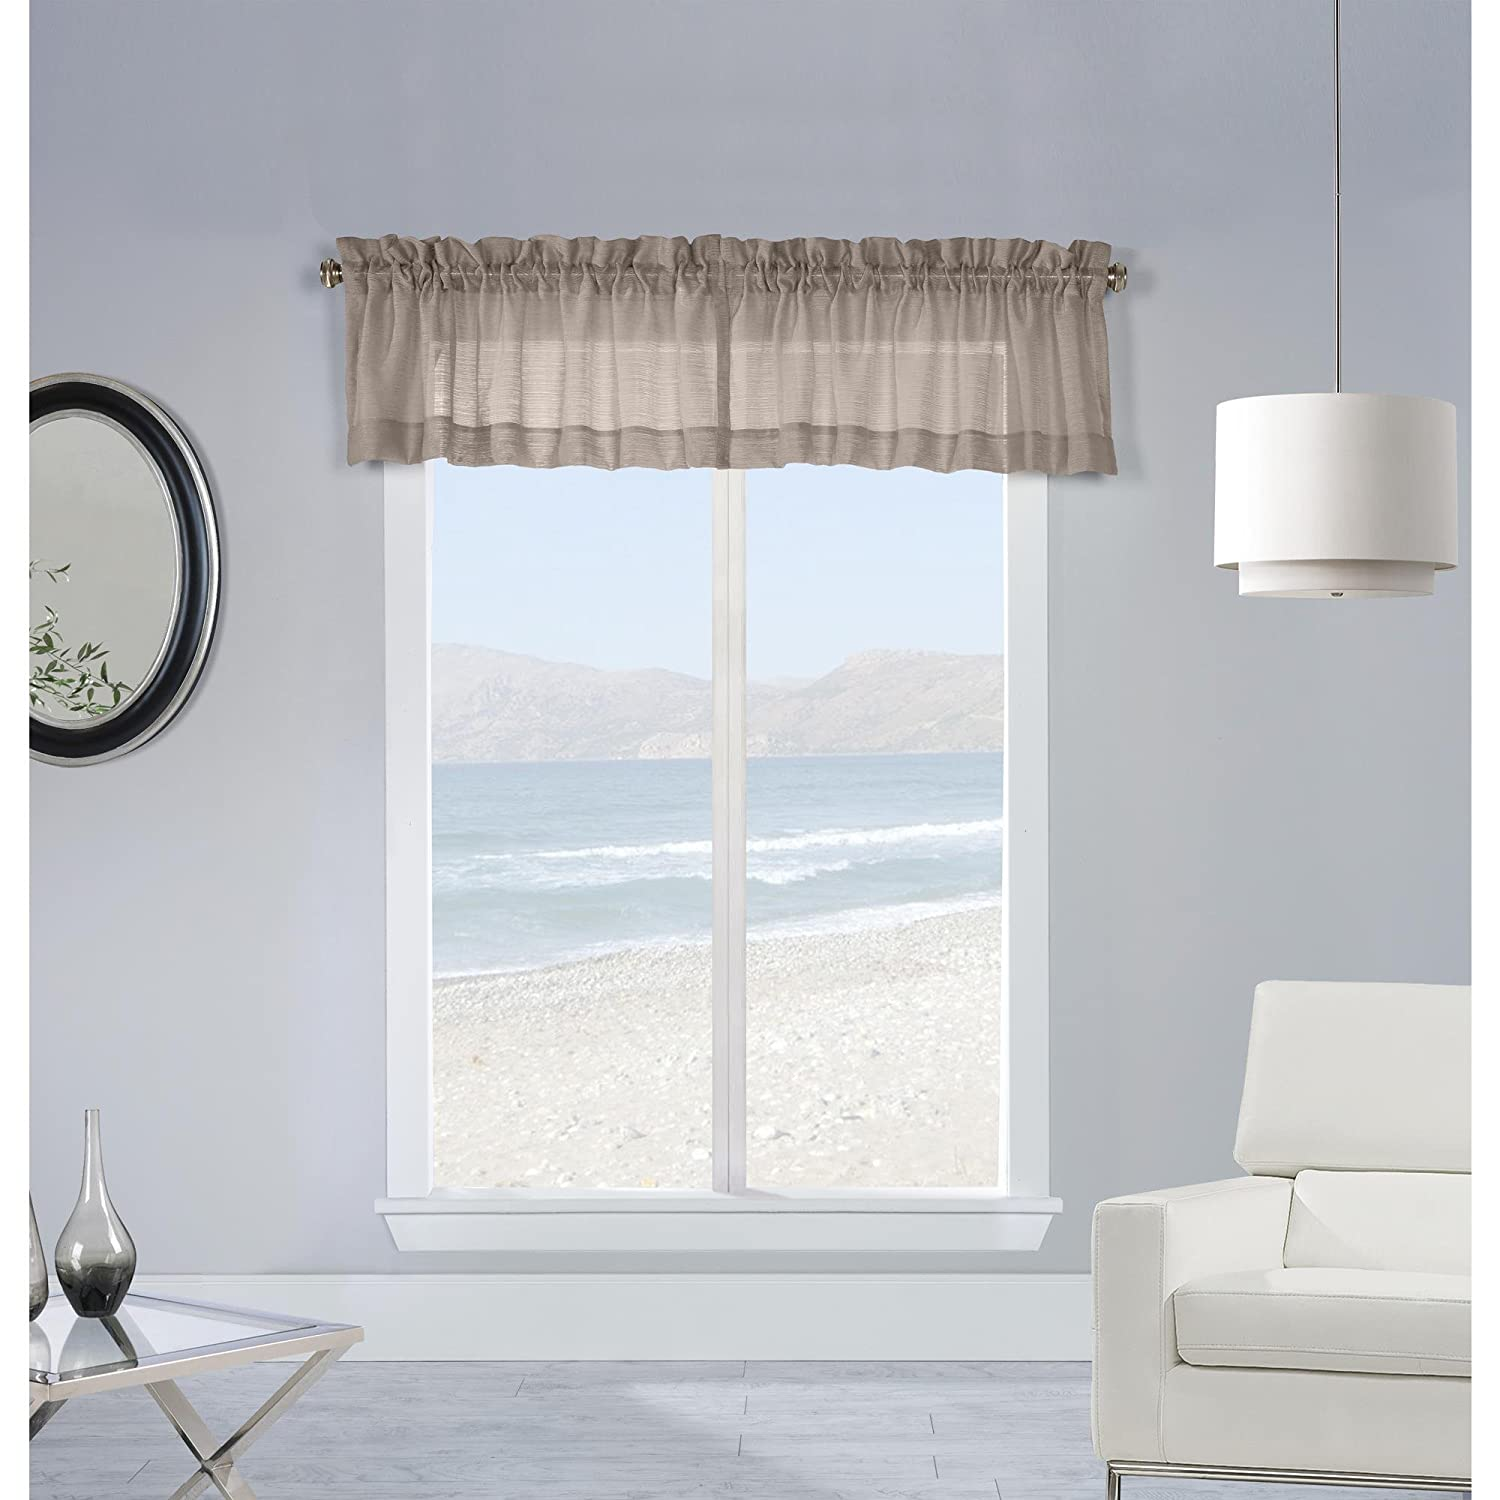 Commonwealth Mist Stripe 16 Pole Top Valance in Taupe